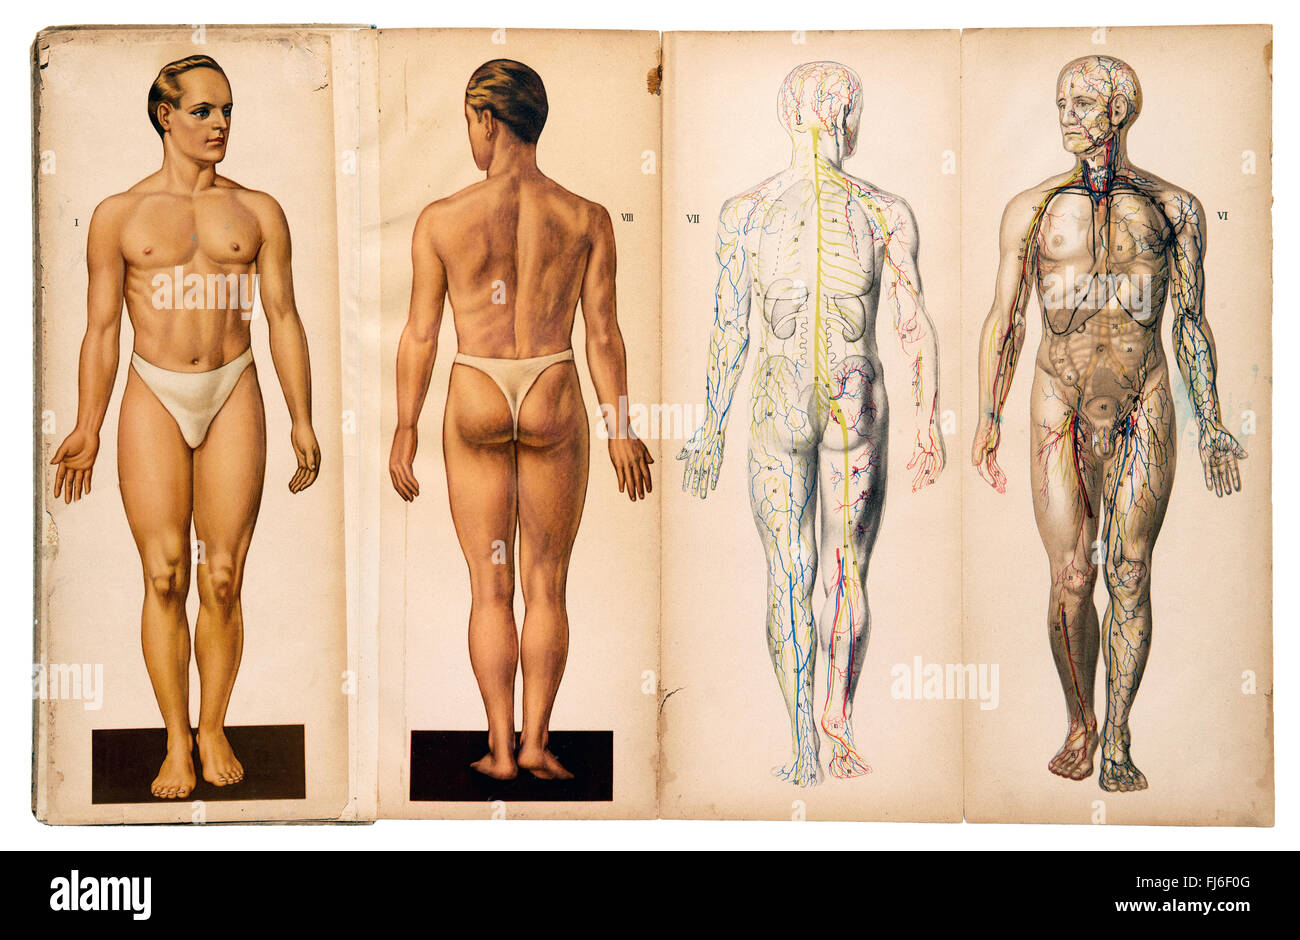 hight resolution of old vintage male medical anatomy charts stock image